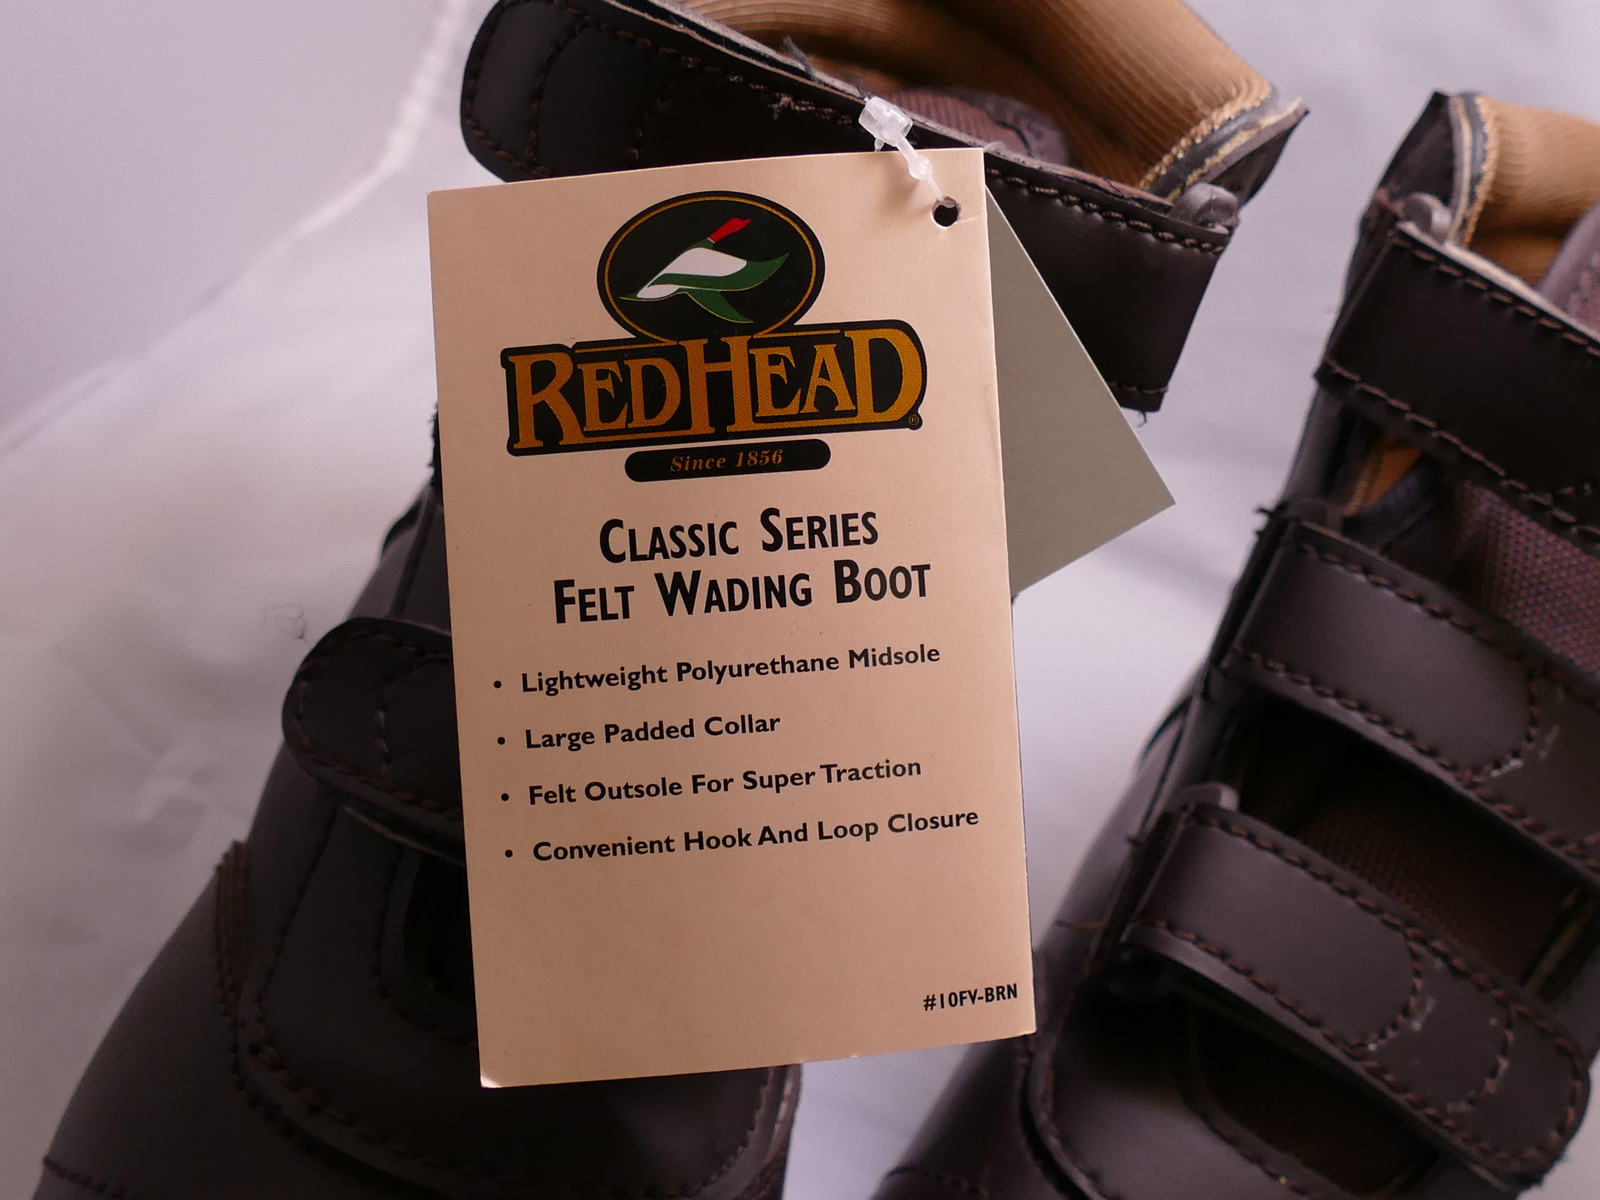 RedHead Classic Series Felt Wading Boots for Women or Boys Size W8 B6